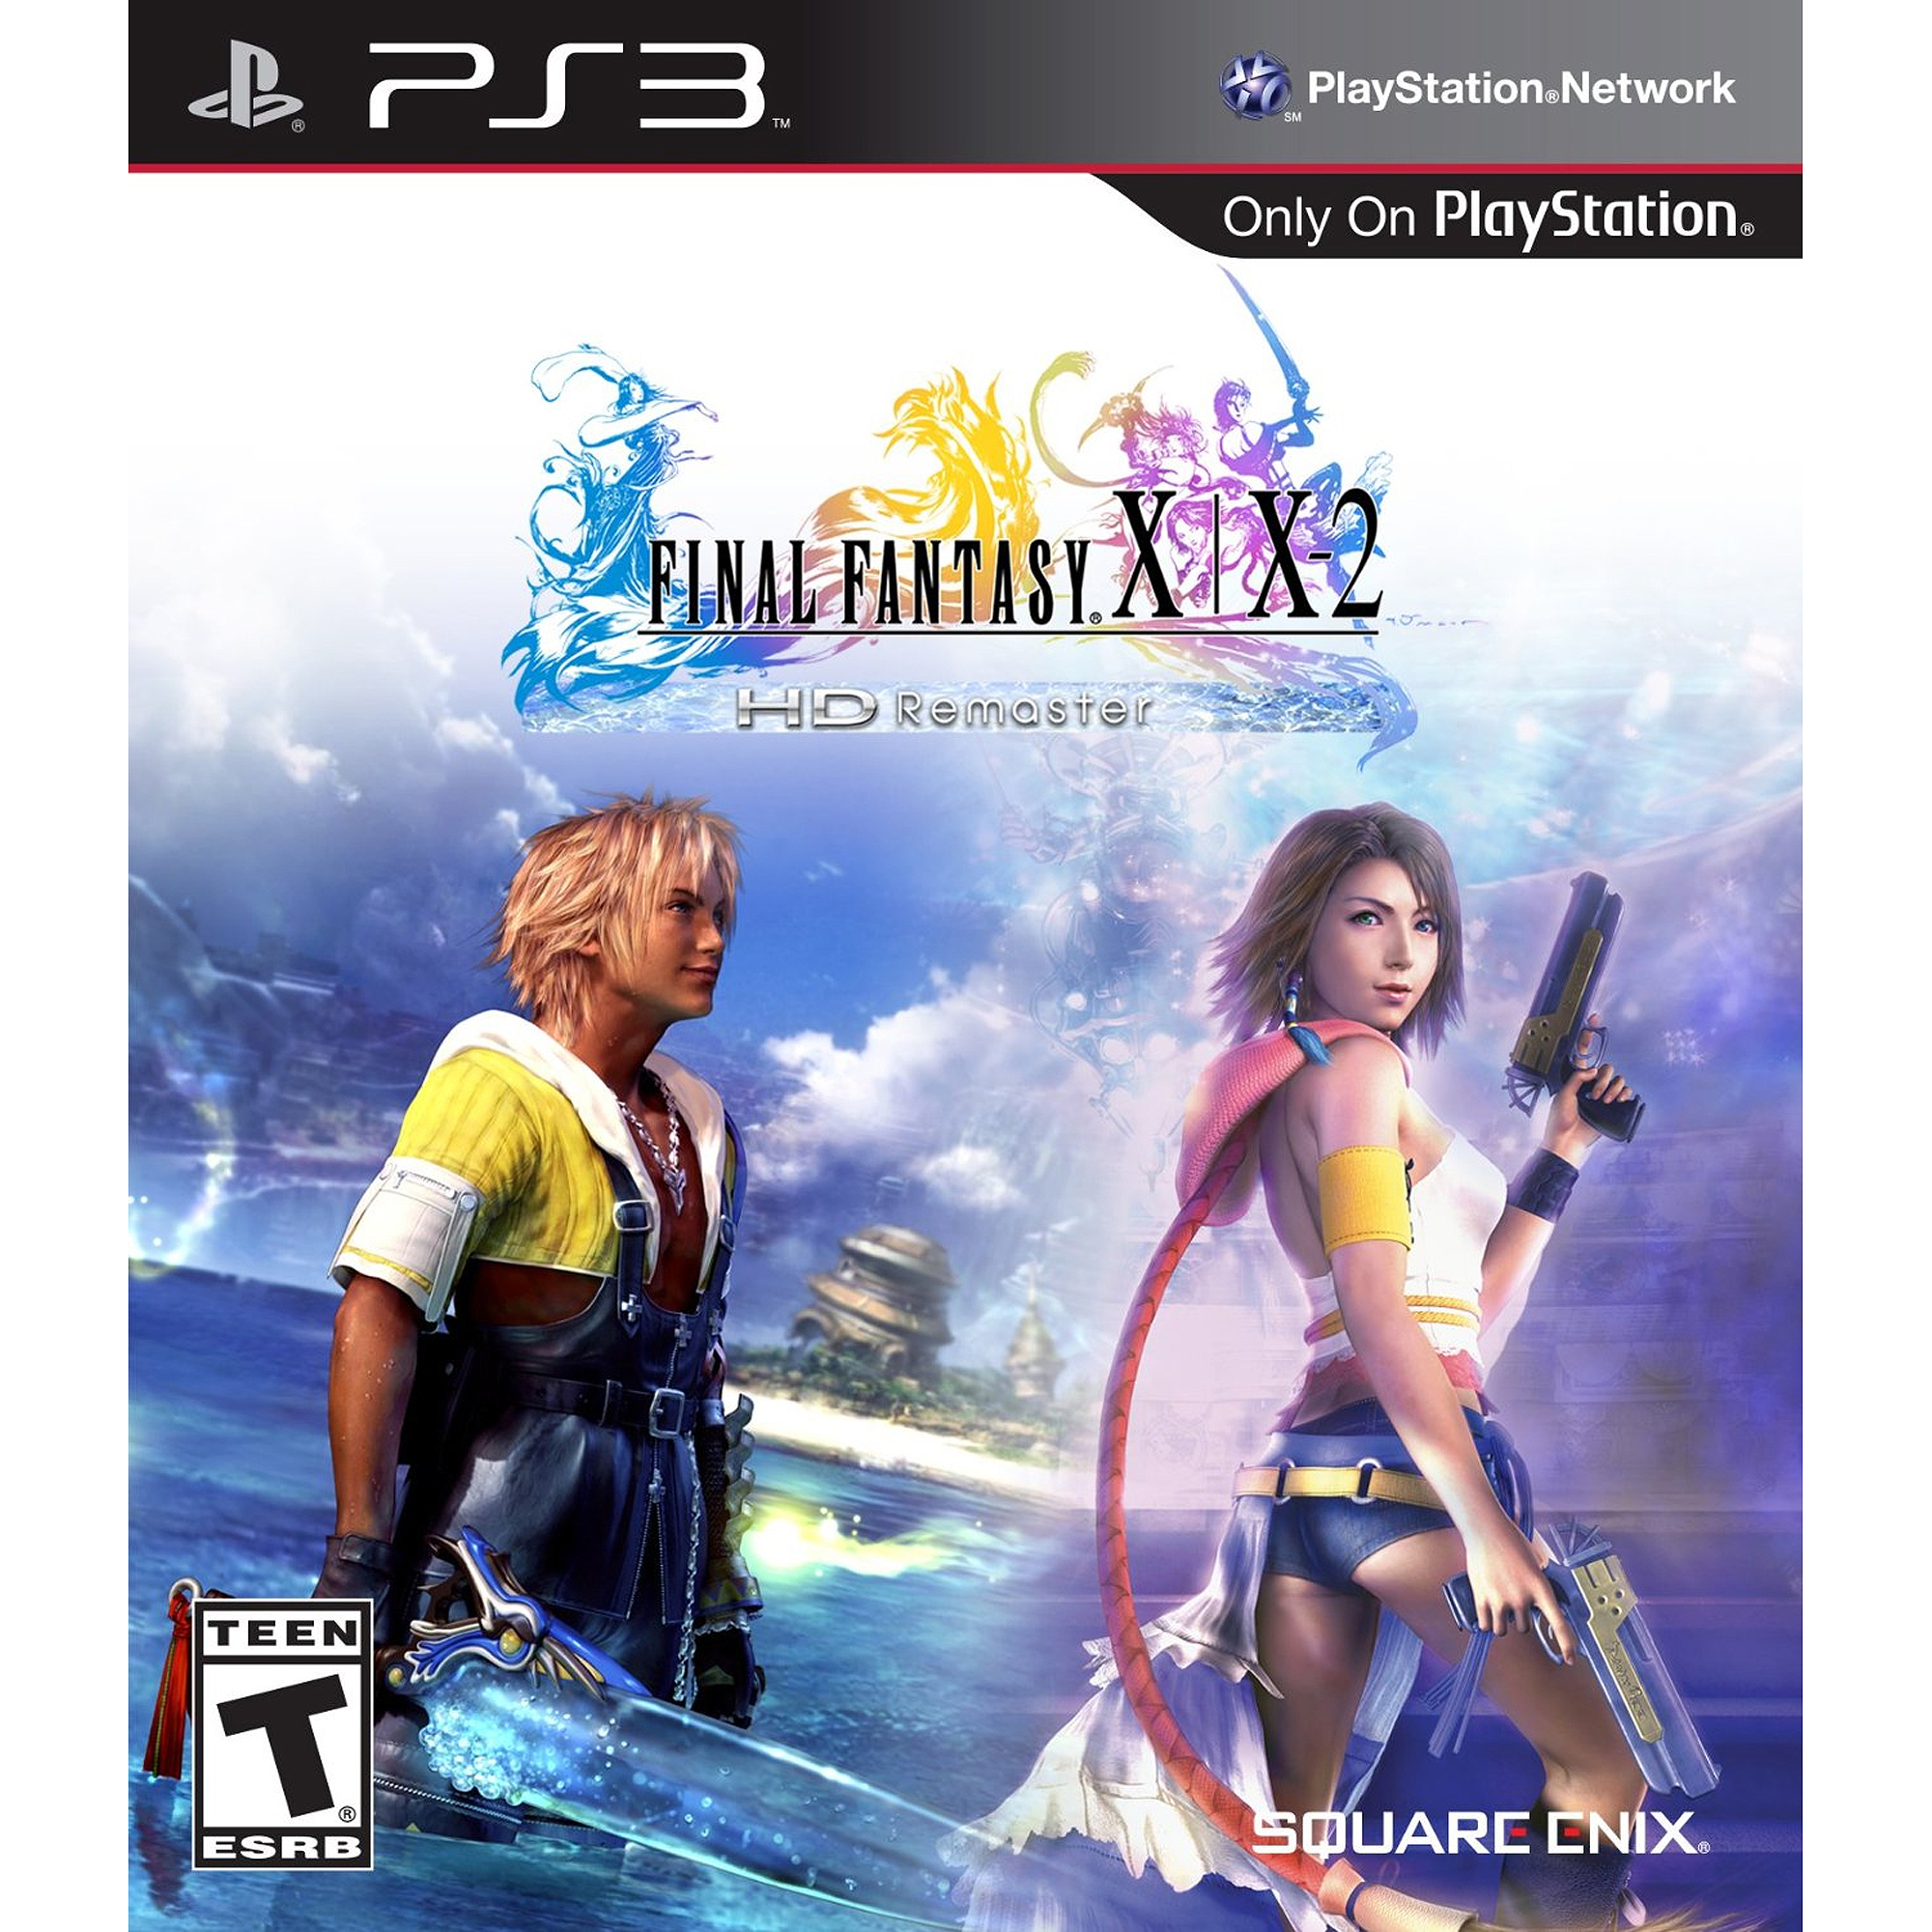 Square Enix Final Fantasy X/X-2 HD Remaster (PS3) - Pre-Owned